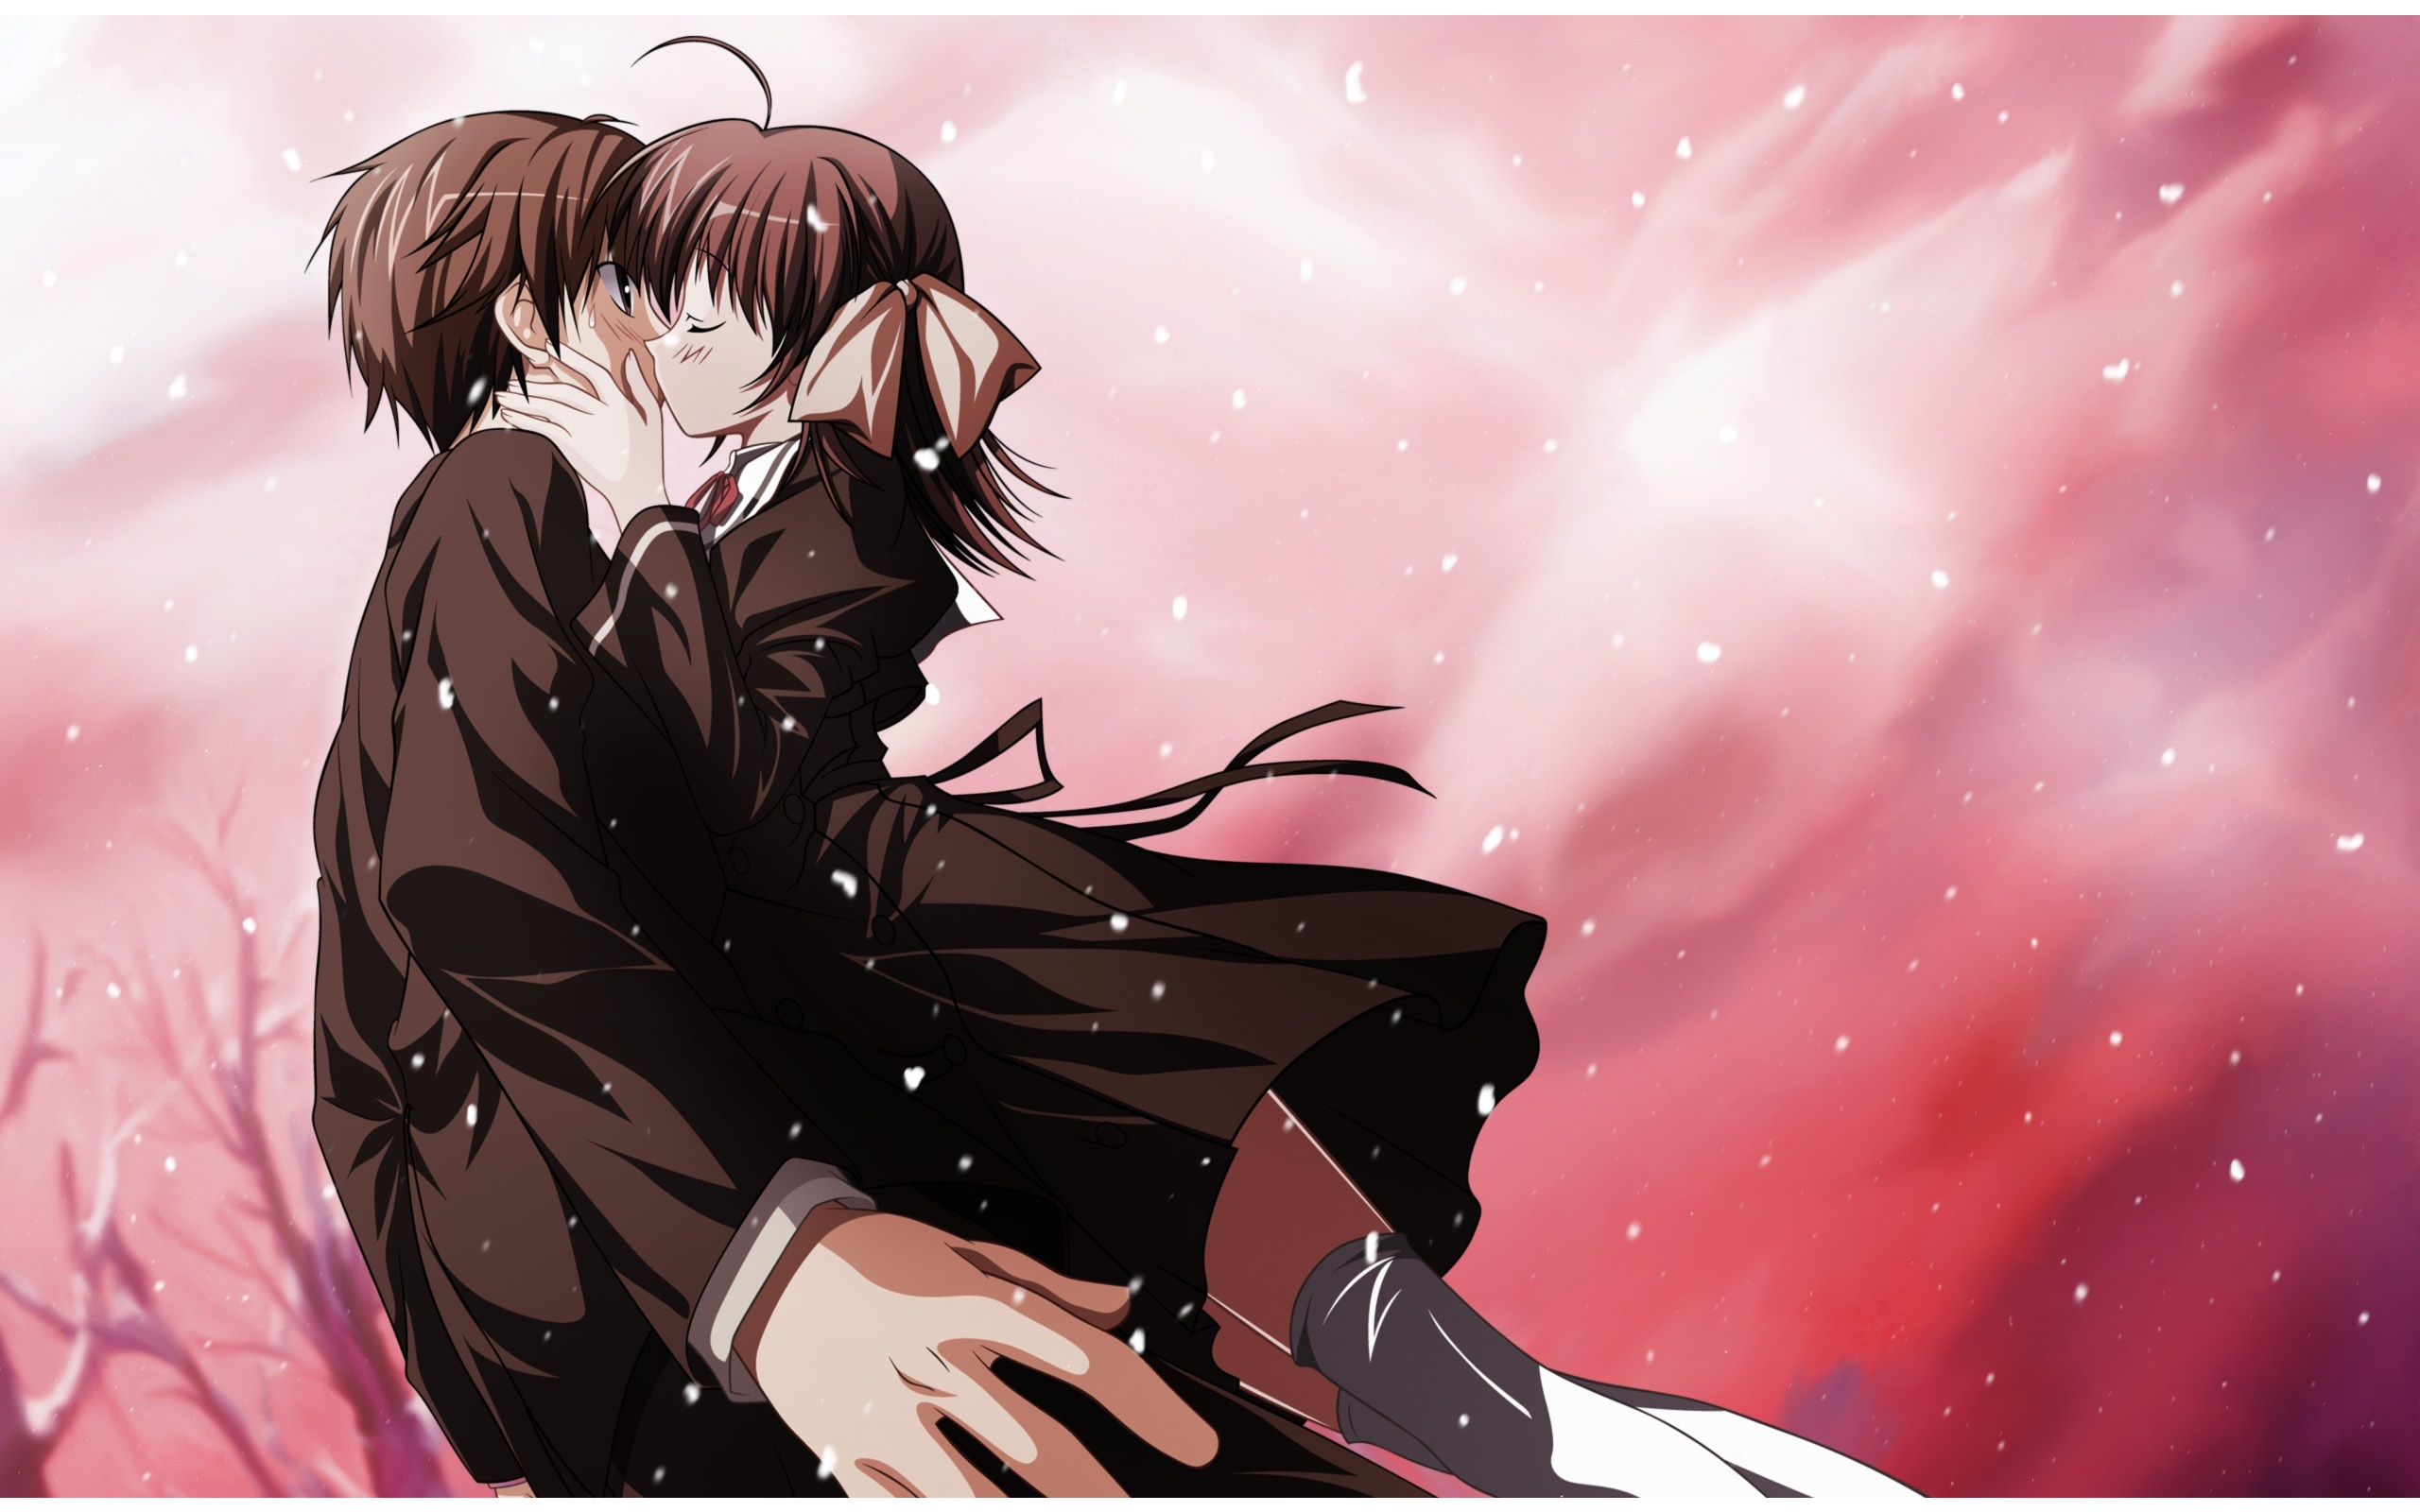 Anime Kiss Of Love Wallpapers 2560x1600 559194